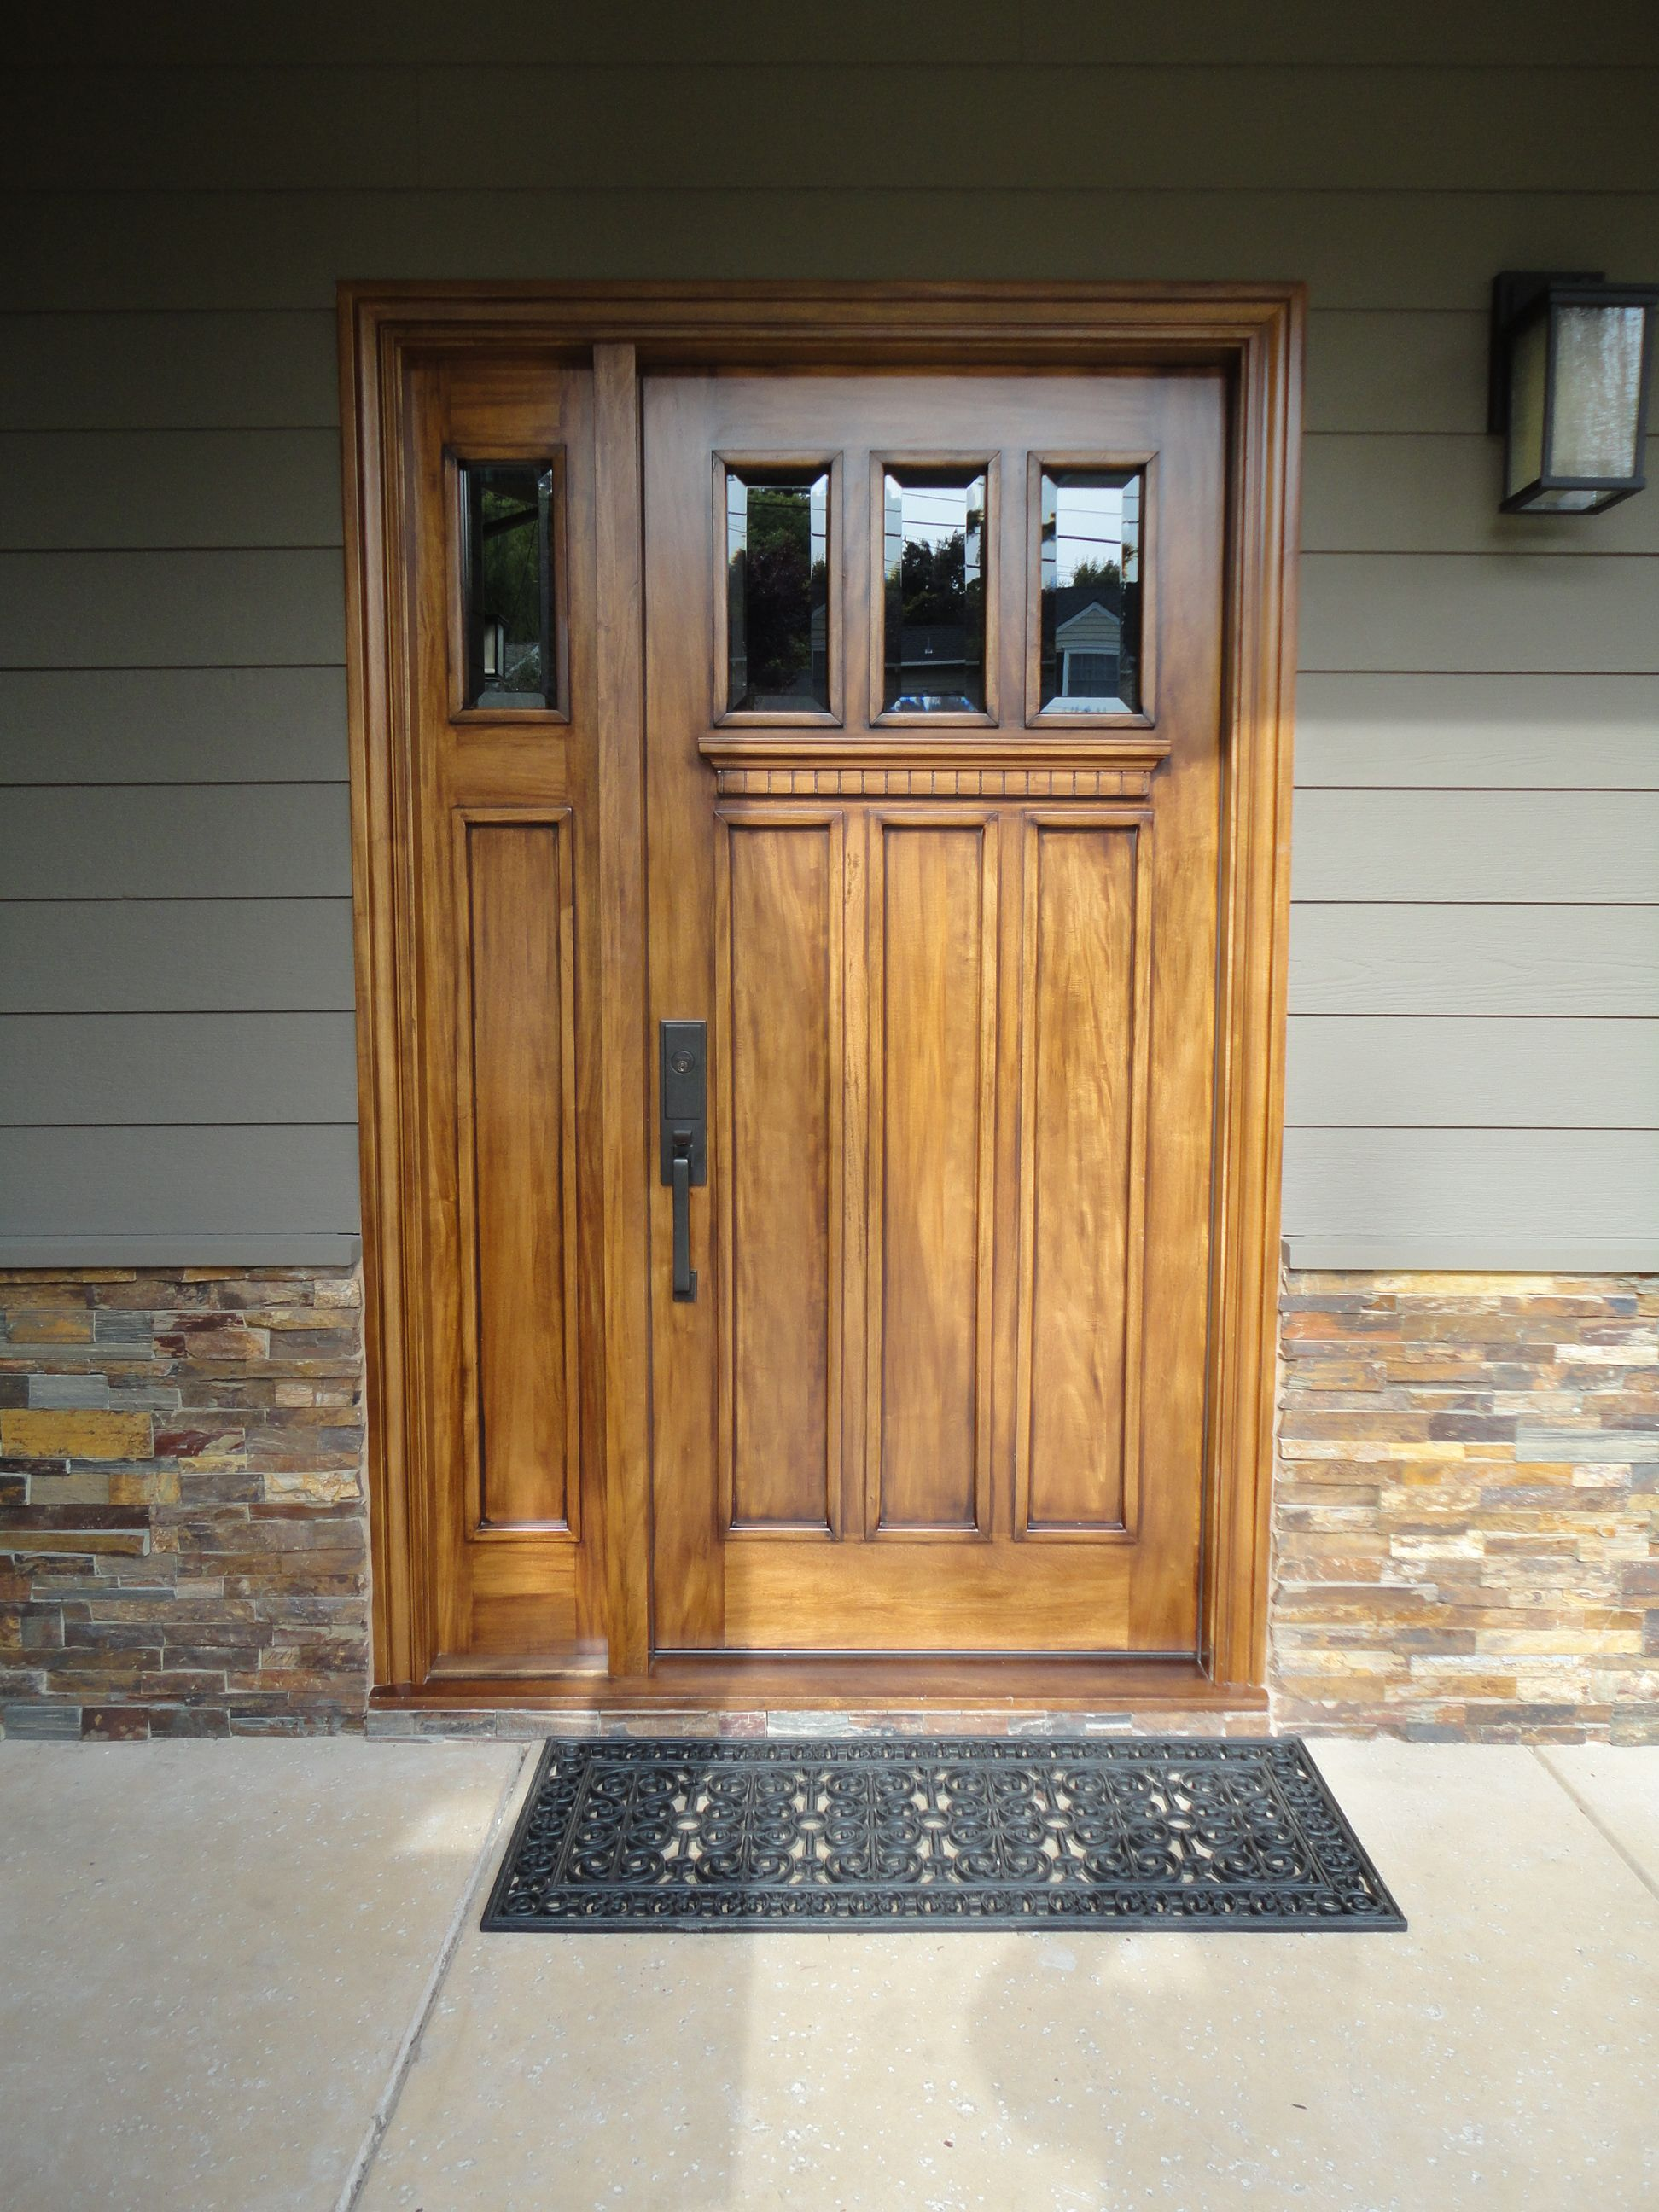 Craftsman front door with sidelights - 3 Light 3 Panel Craftsman Entry Door With One 1 Light 1 Panel Sidelight